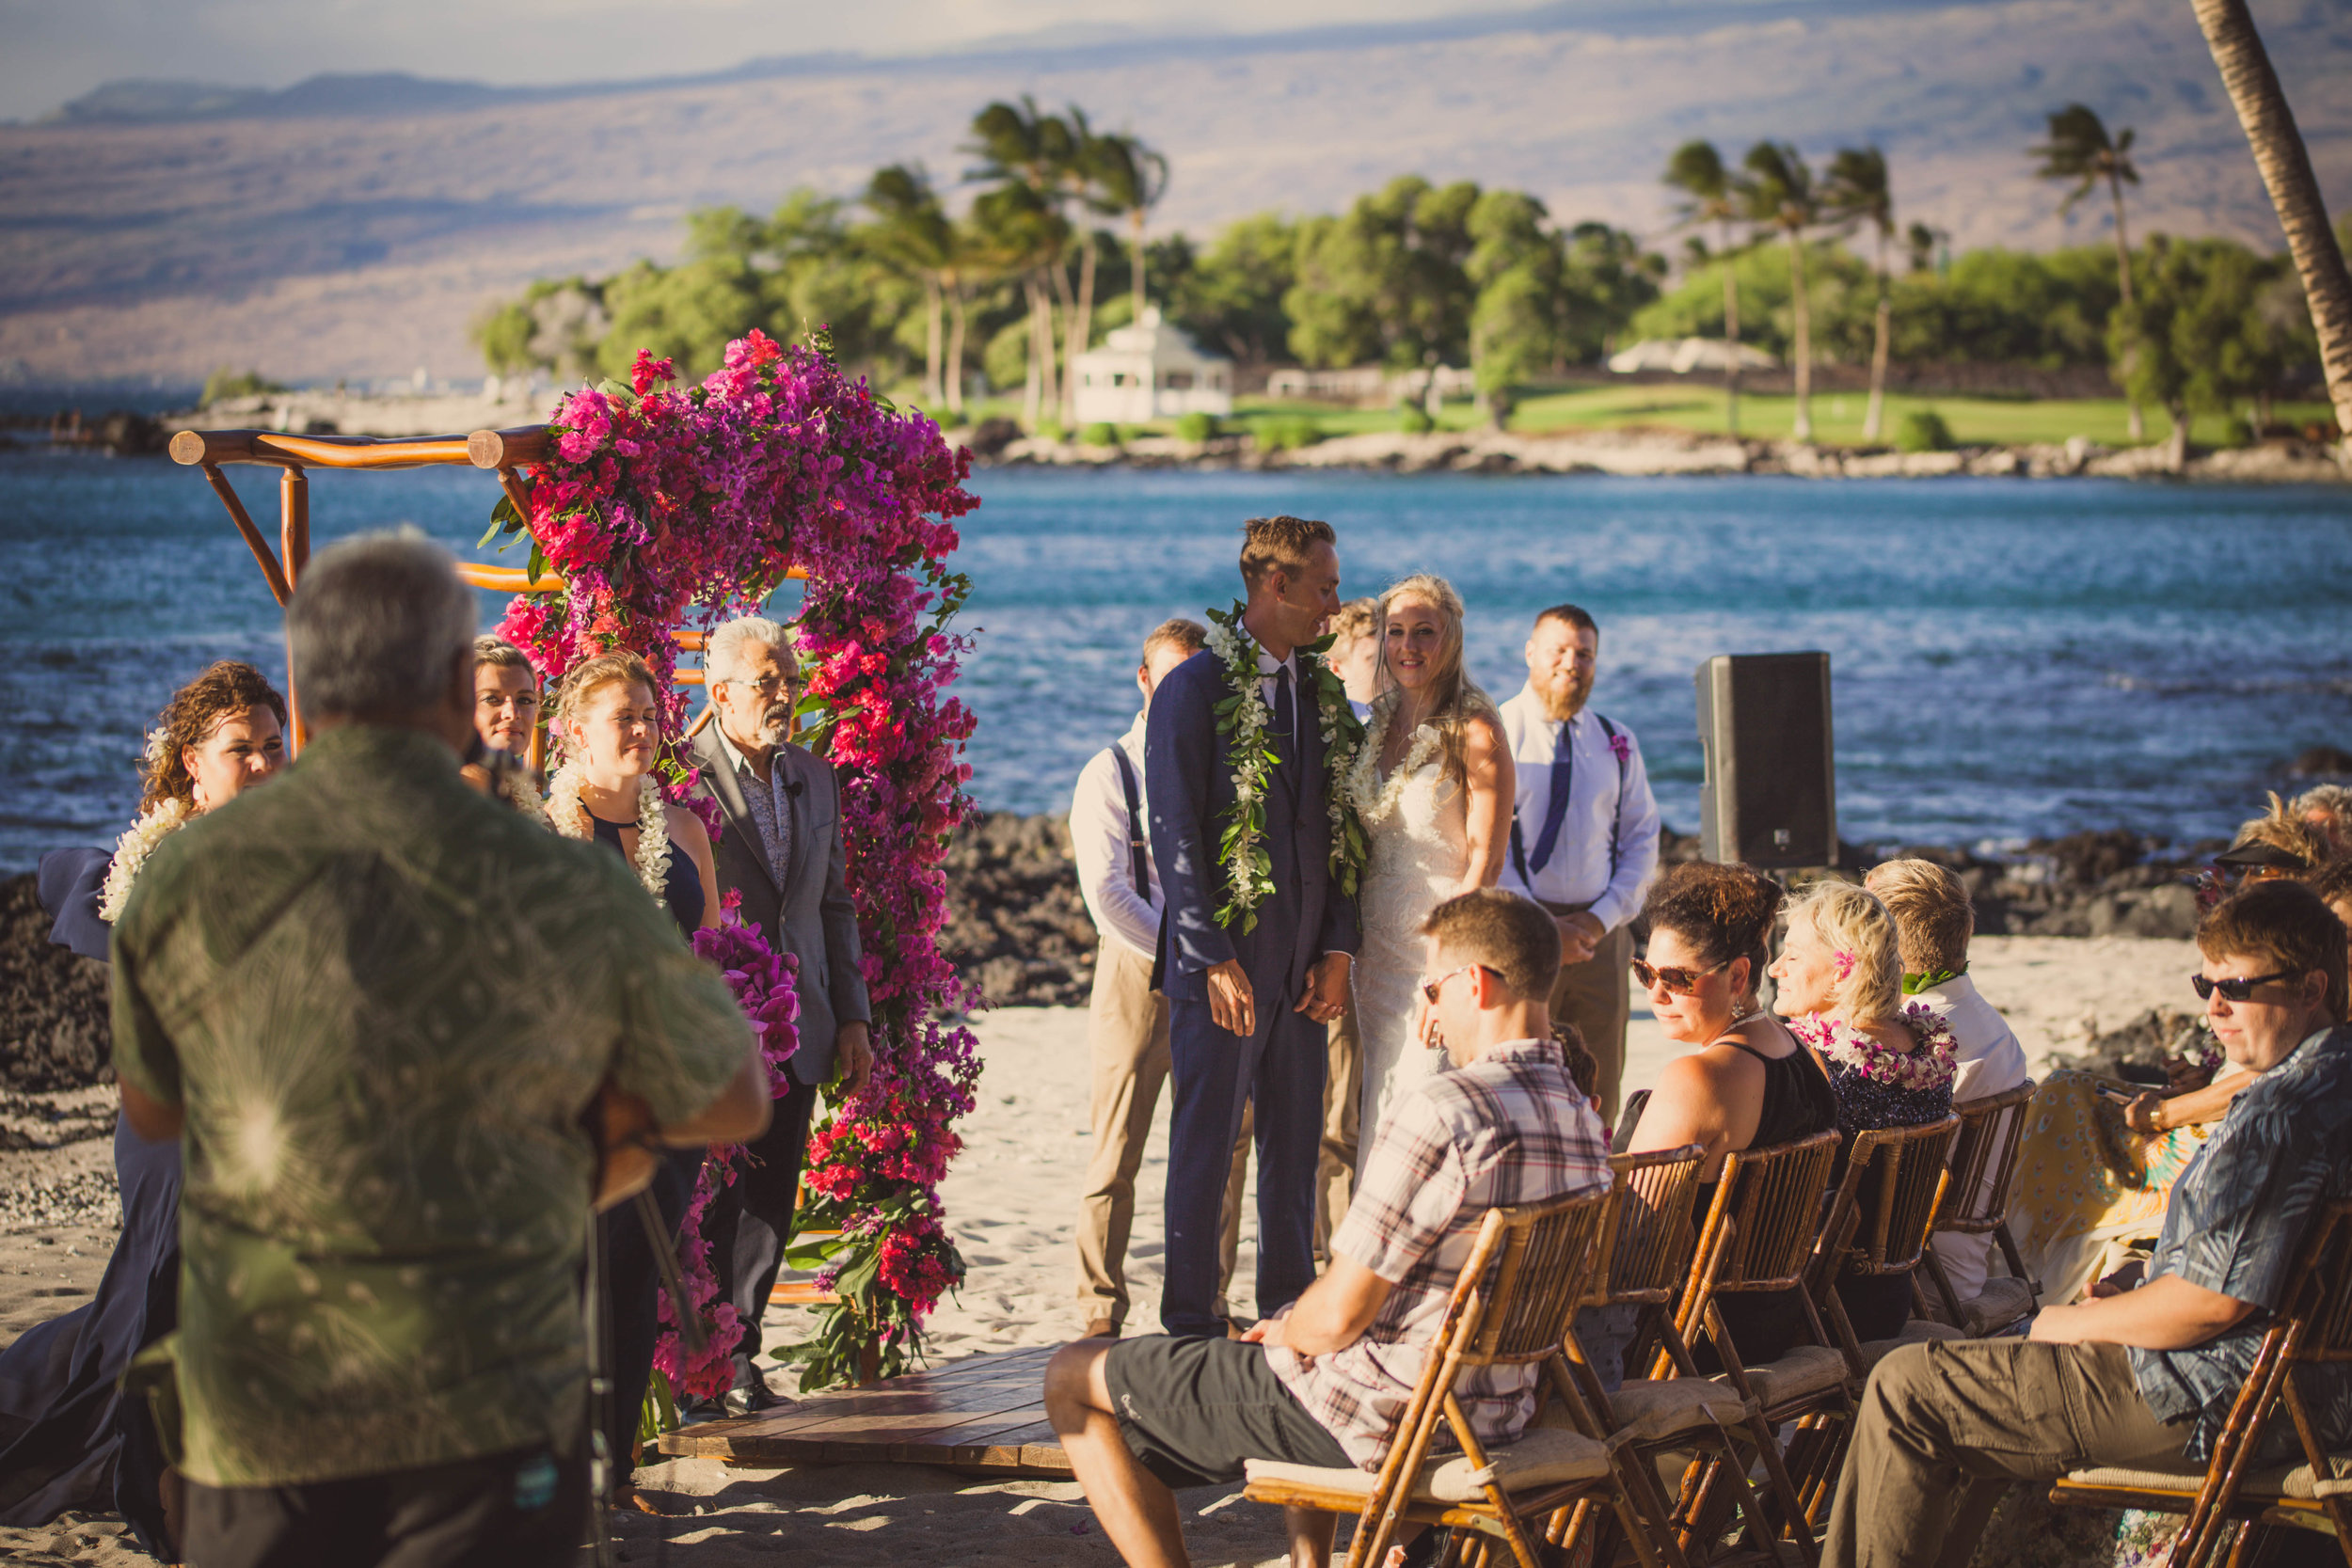 big island hawaii fairmont orchid beach wedding © kelilina photography 20170812174808-1.jpg